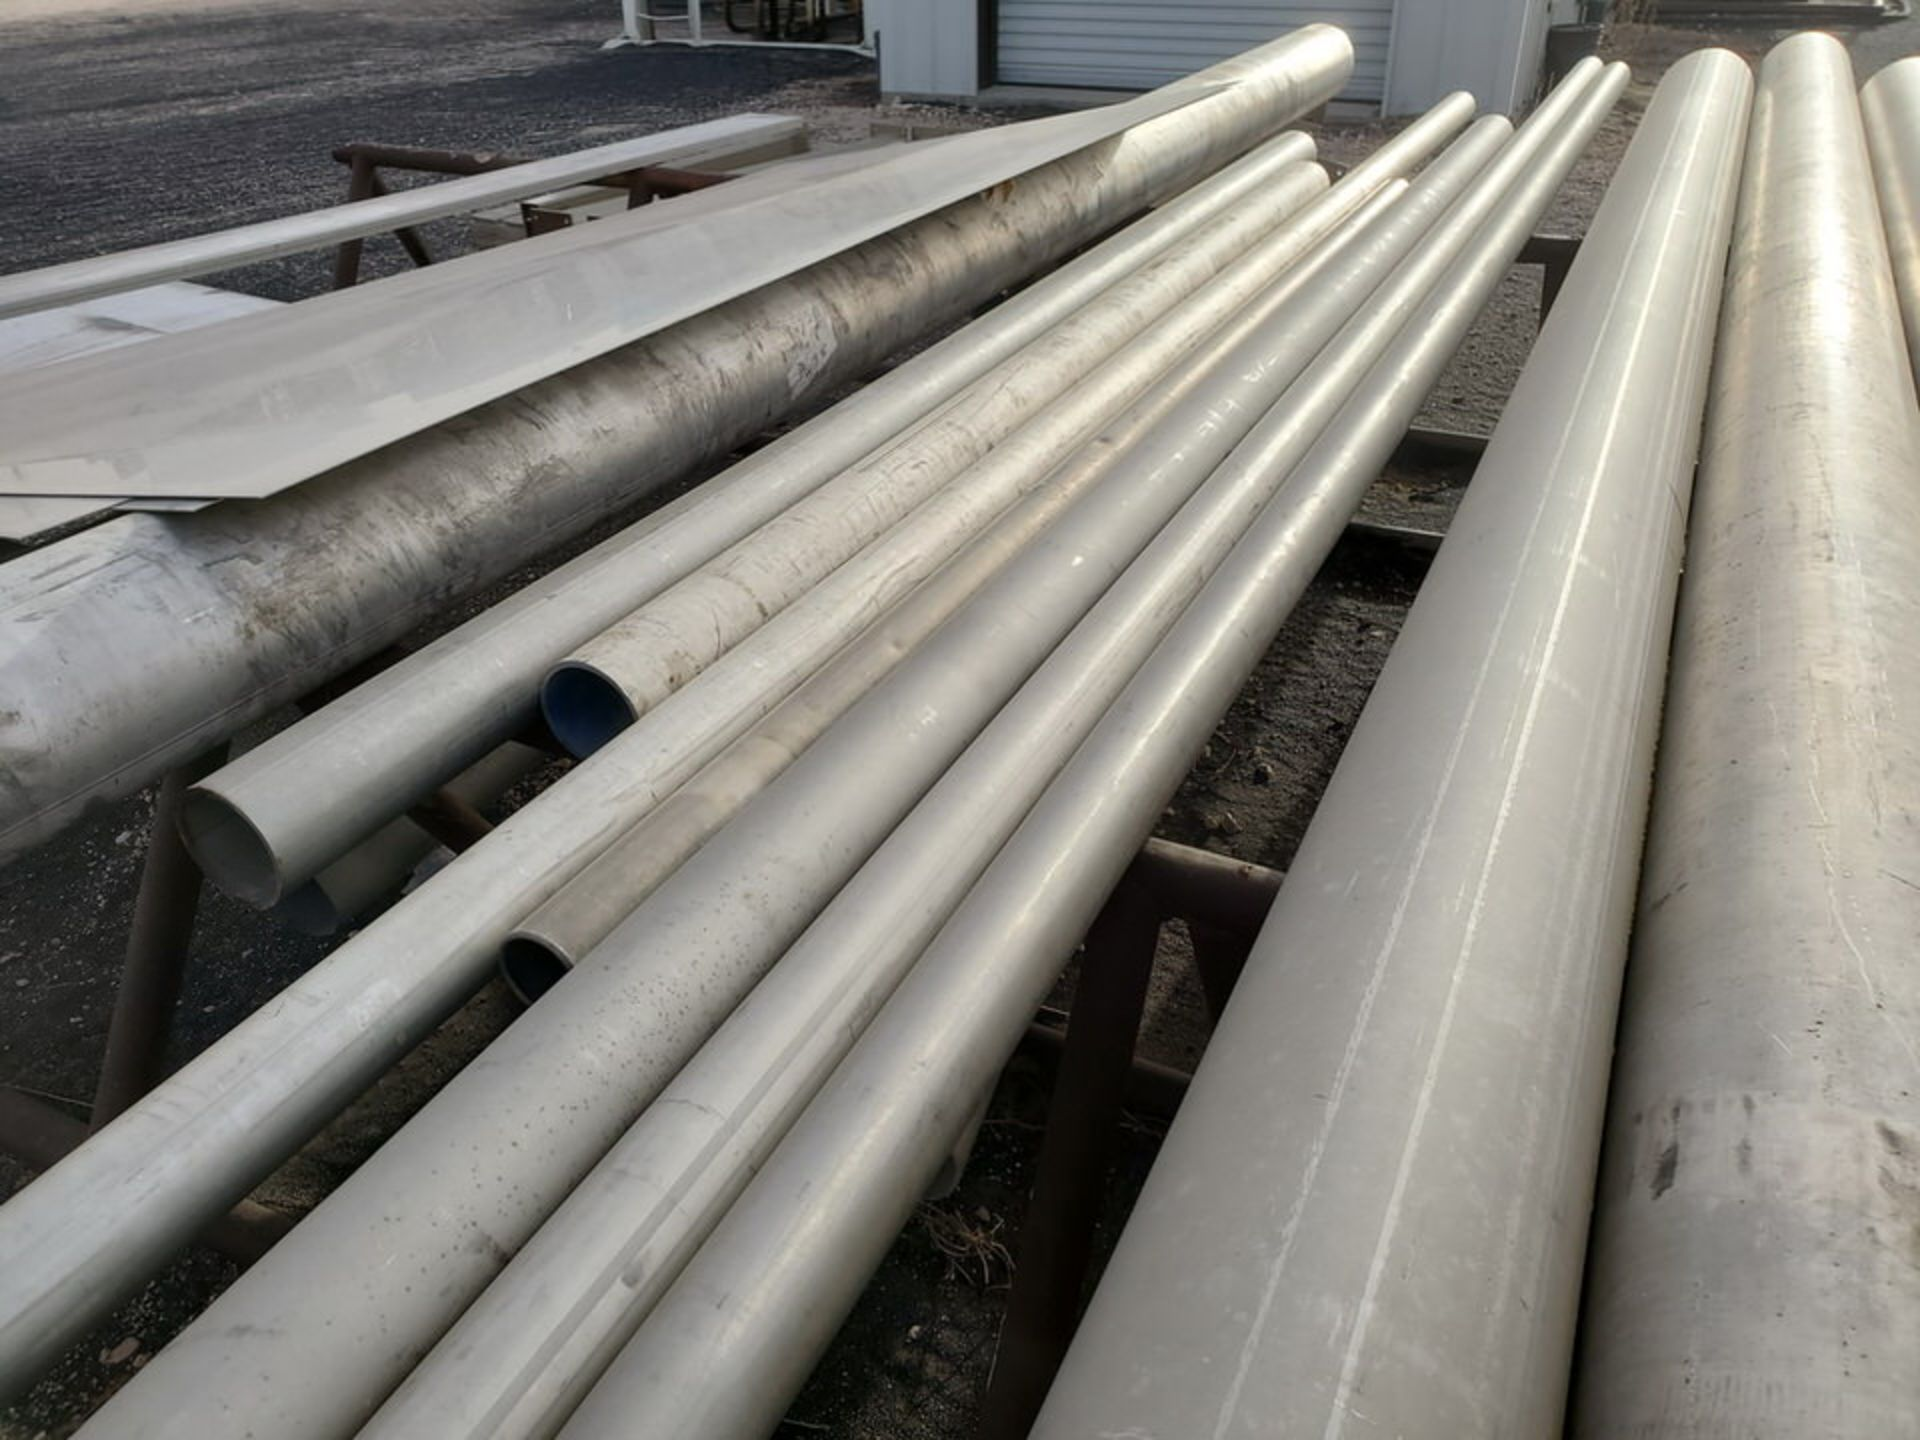 Assorted Matl. To Include But Not Limited To: S/S Flat Bar, Pipe & Sheets (Rack Excluded) - Image 12 of 22